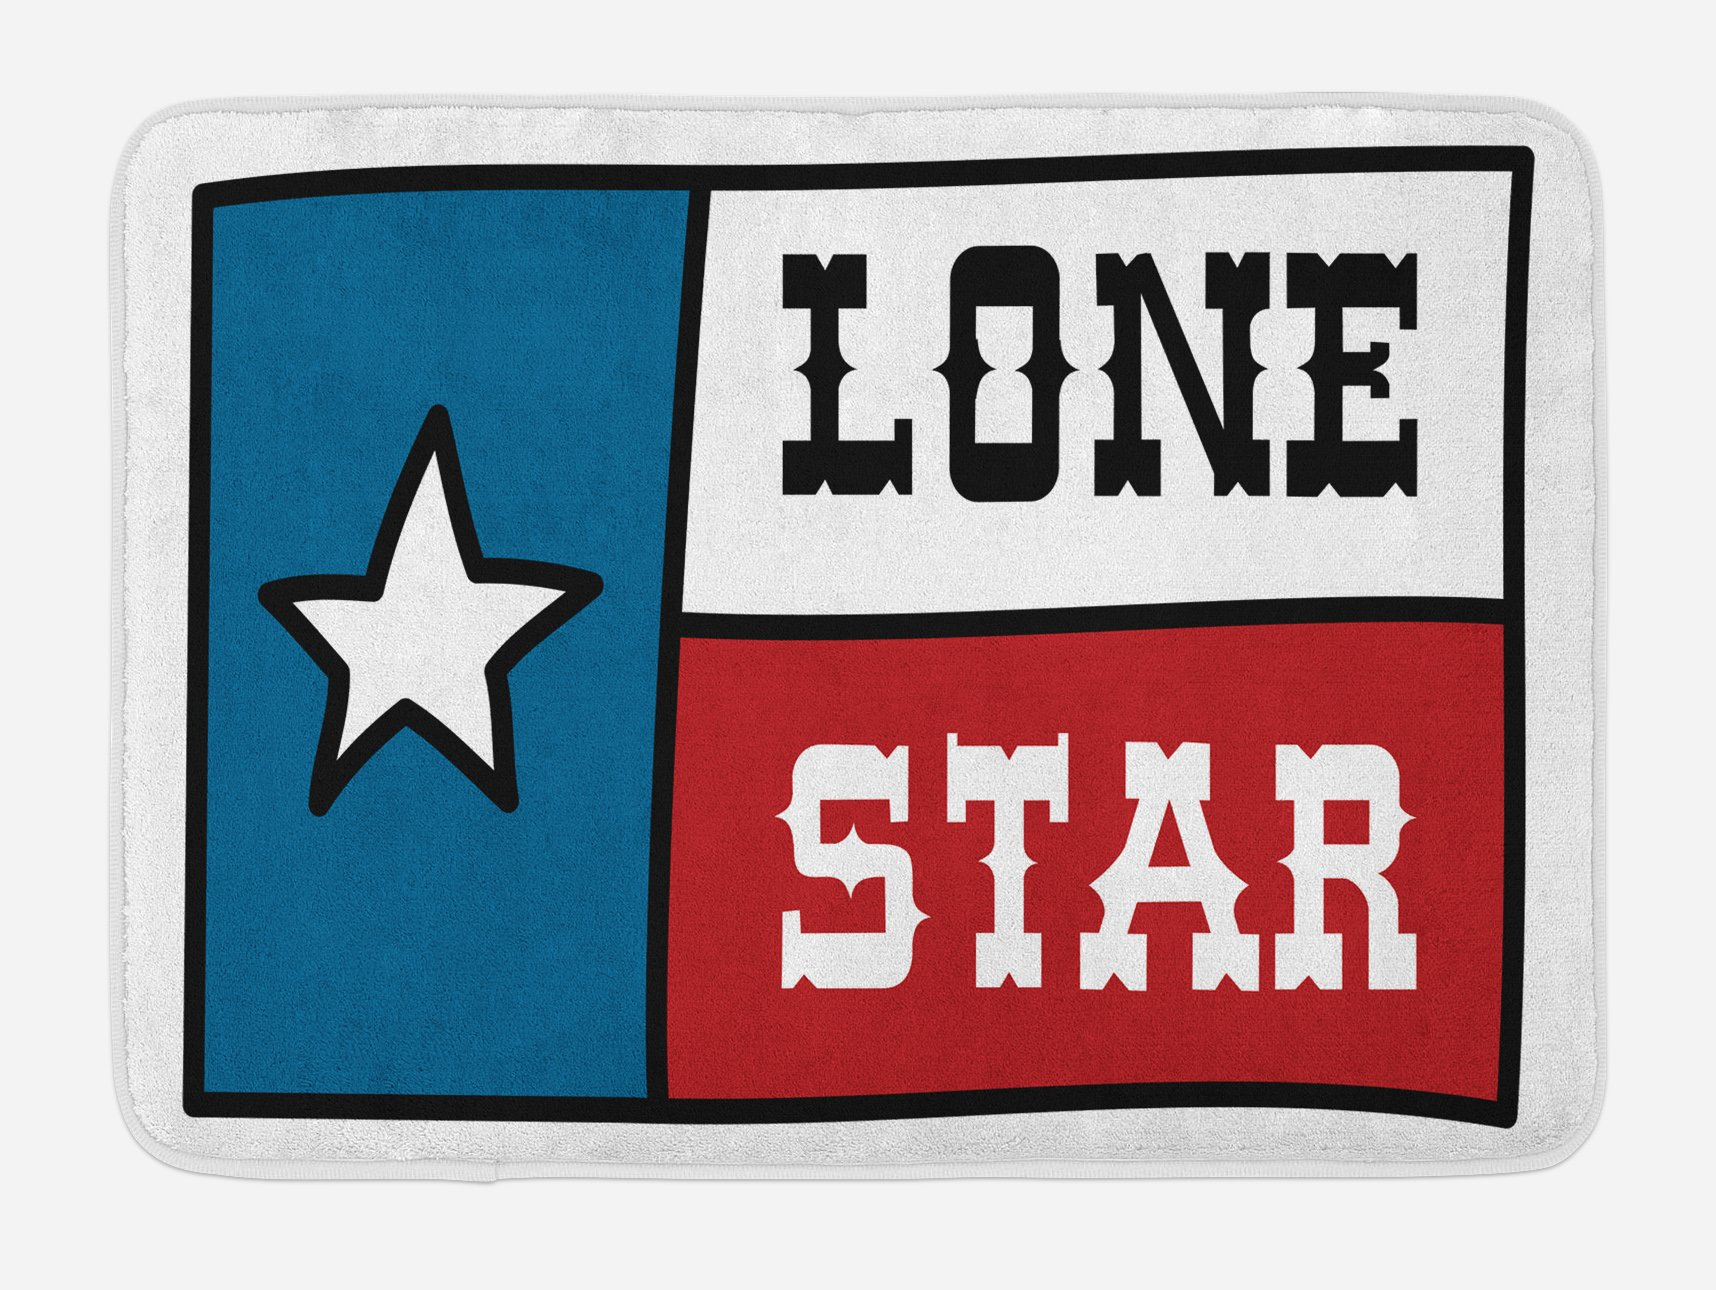 Ambesonne Texas Star Bath Mat, Lone Star Flag United States of America Themed Patriotic Design, Plush Bathroom Decor Mat with Non Slip Backing, 29.5 W X 17.5 W Inches, Cobalt Blue Ruby White